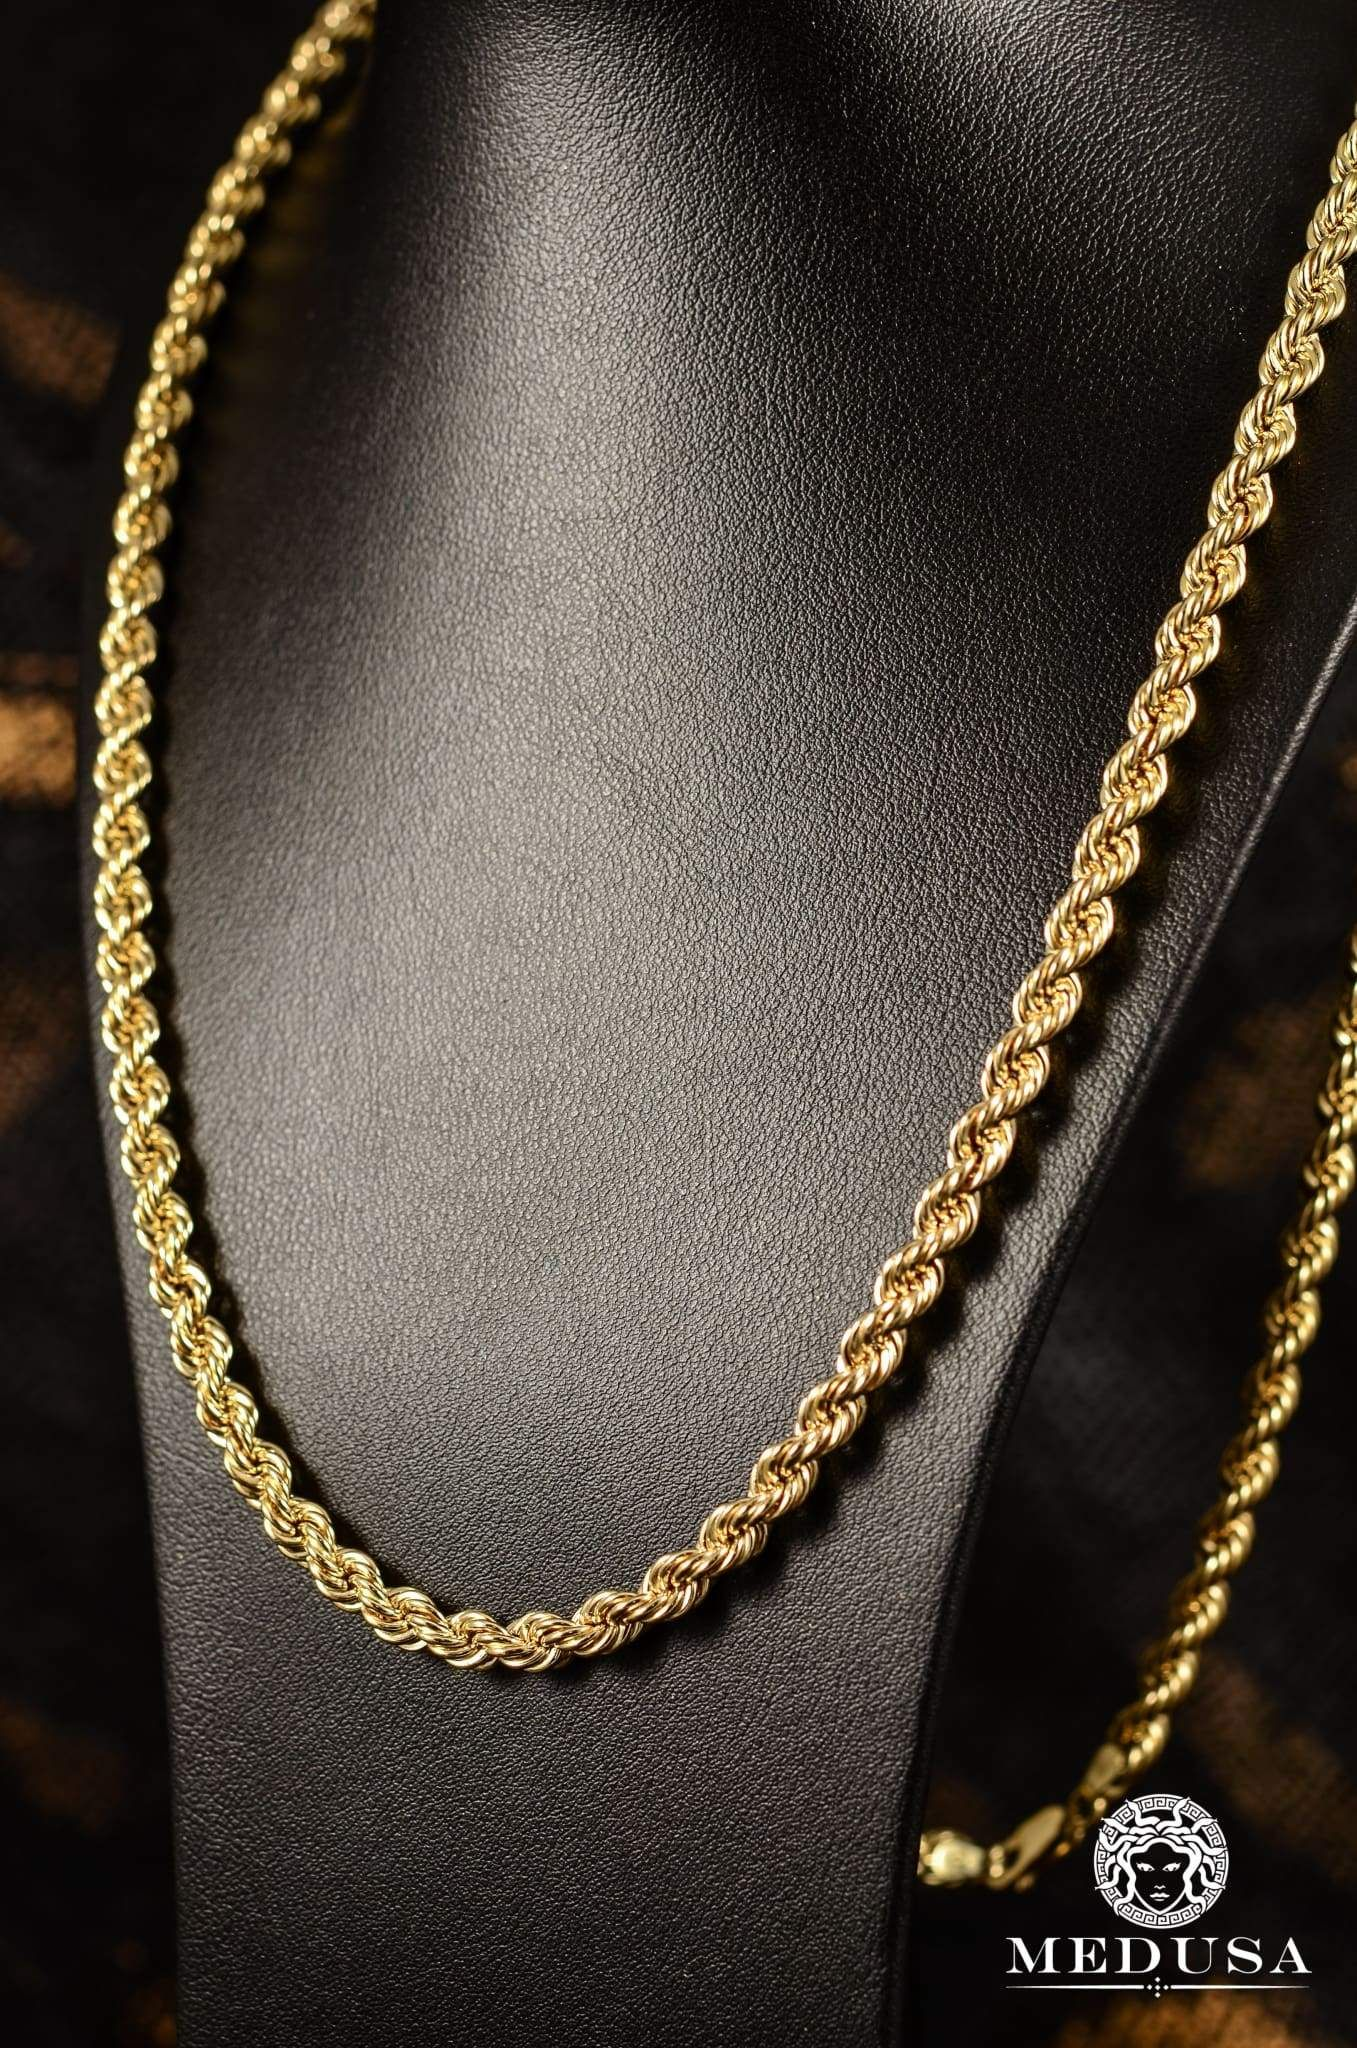 5mm Torsade Gold Chains For Men Gold Chain Jewelry Chains Jewelry